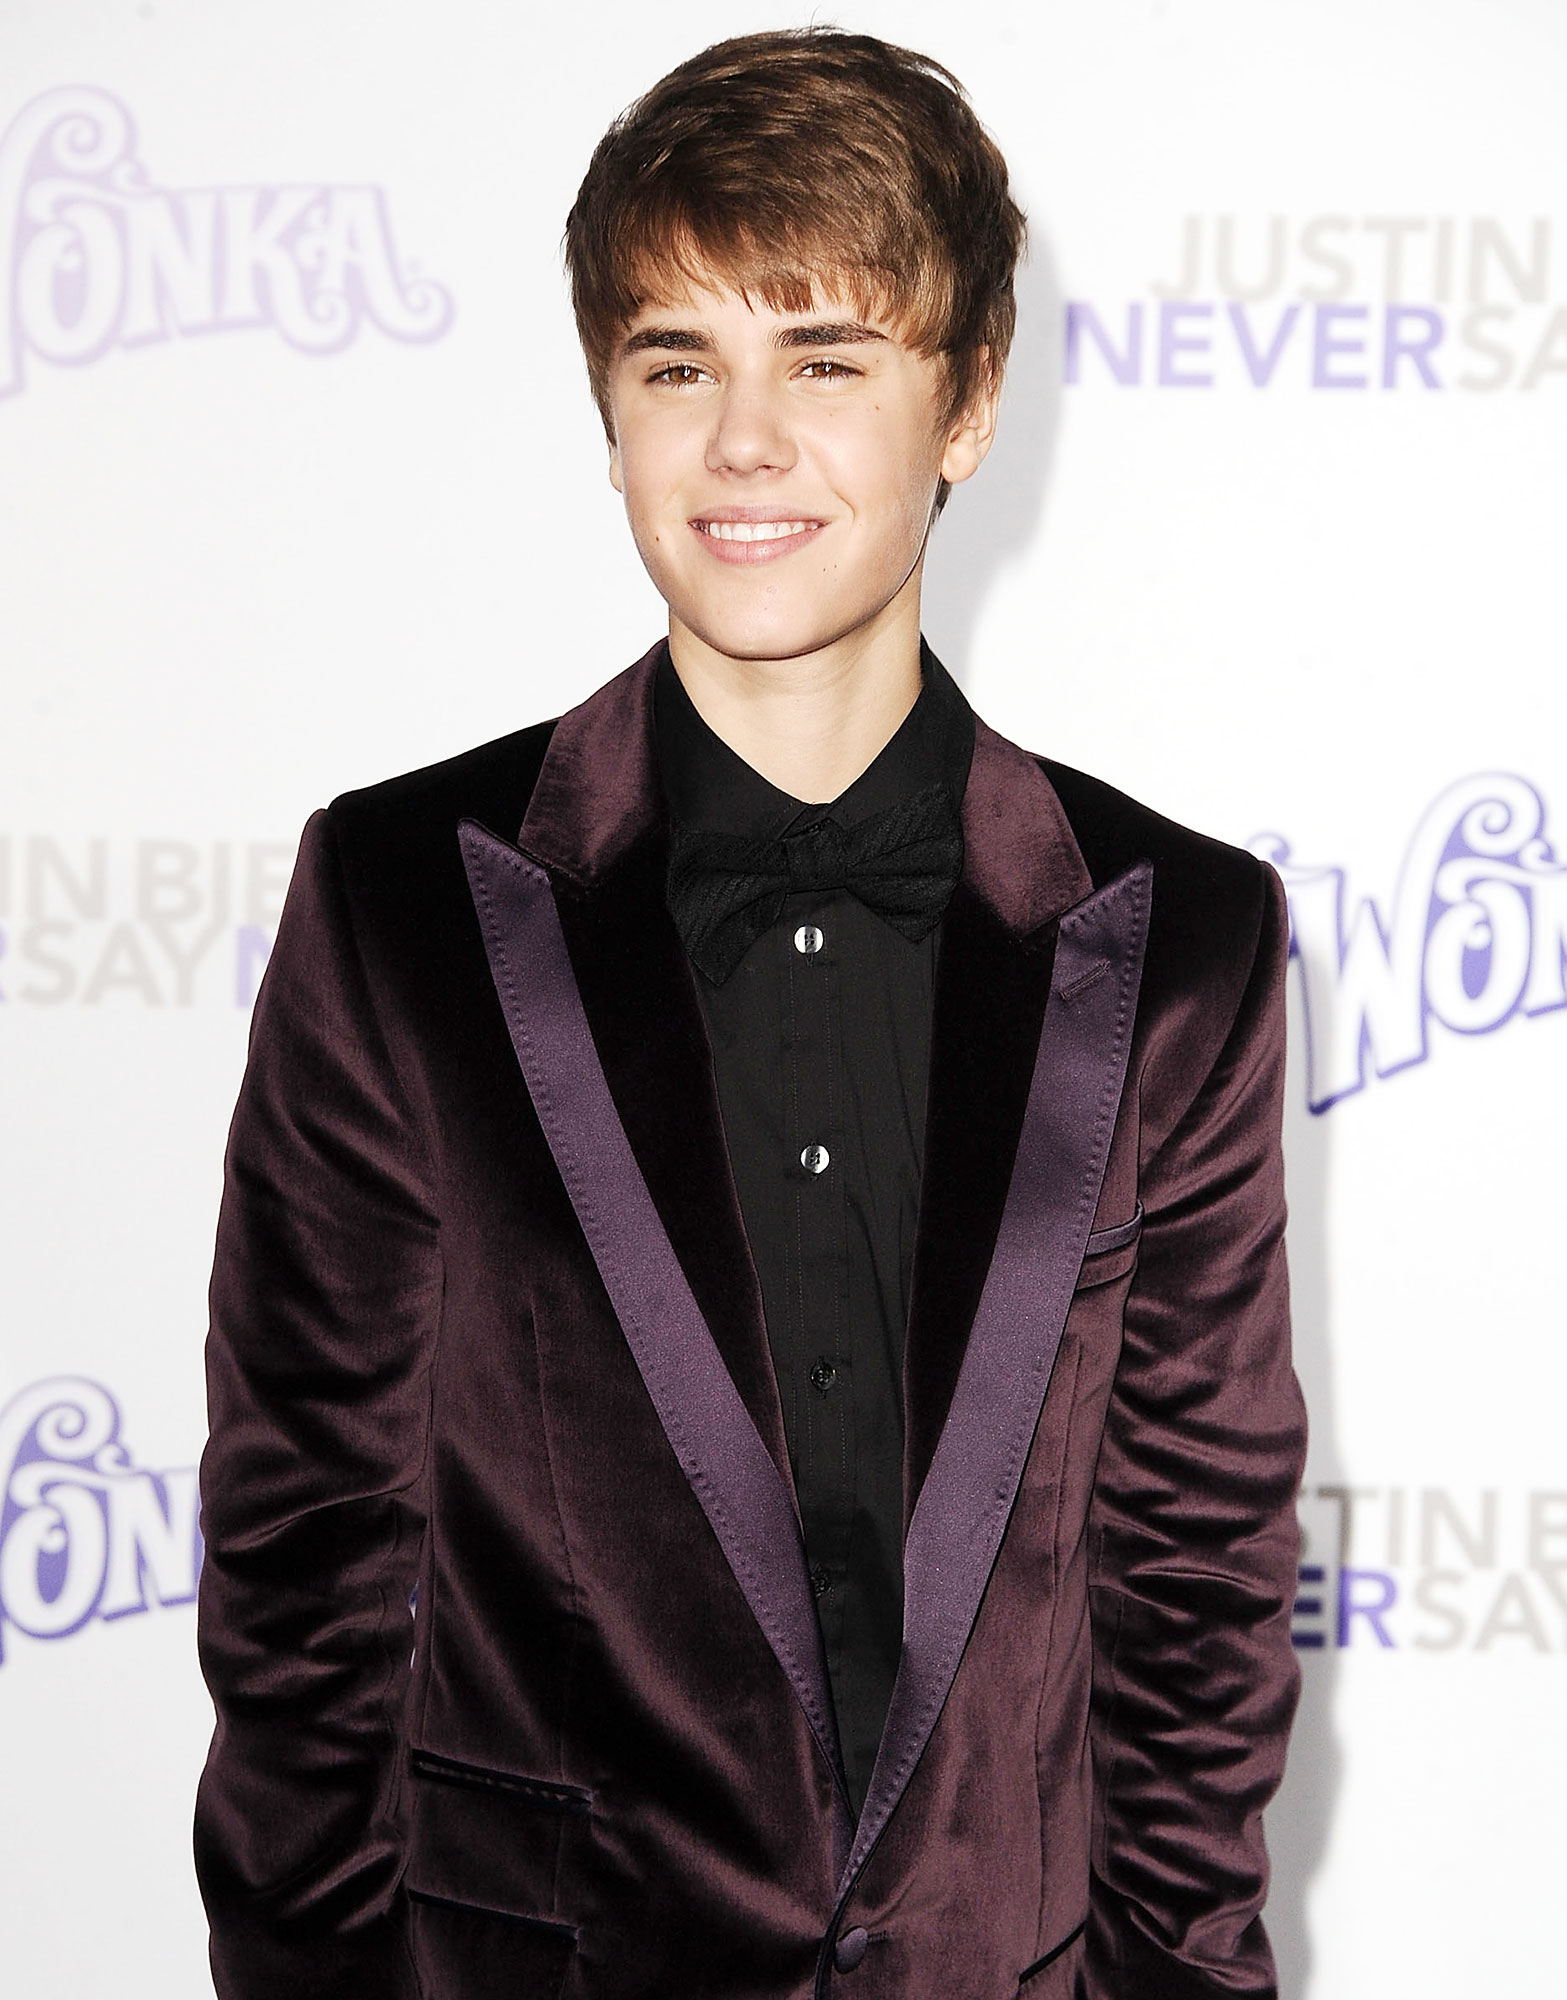 Justin Bieber Through The Years Never Say Never Movie - The pop sensation's 3-D movie, Justin Bieber: Never Say Never , documented the road to his sold-out August 2010 concert at New York City's famed Madison Square Garden. During opening weekend, the film grossed nearly $30 million.